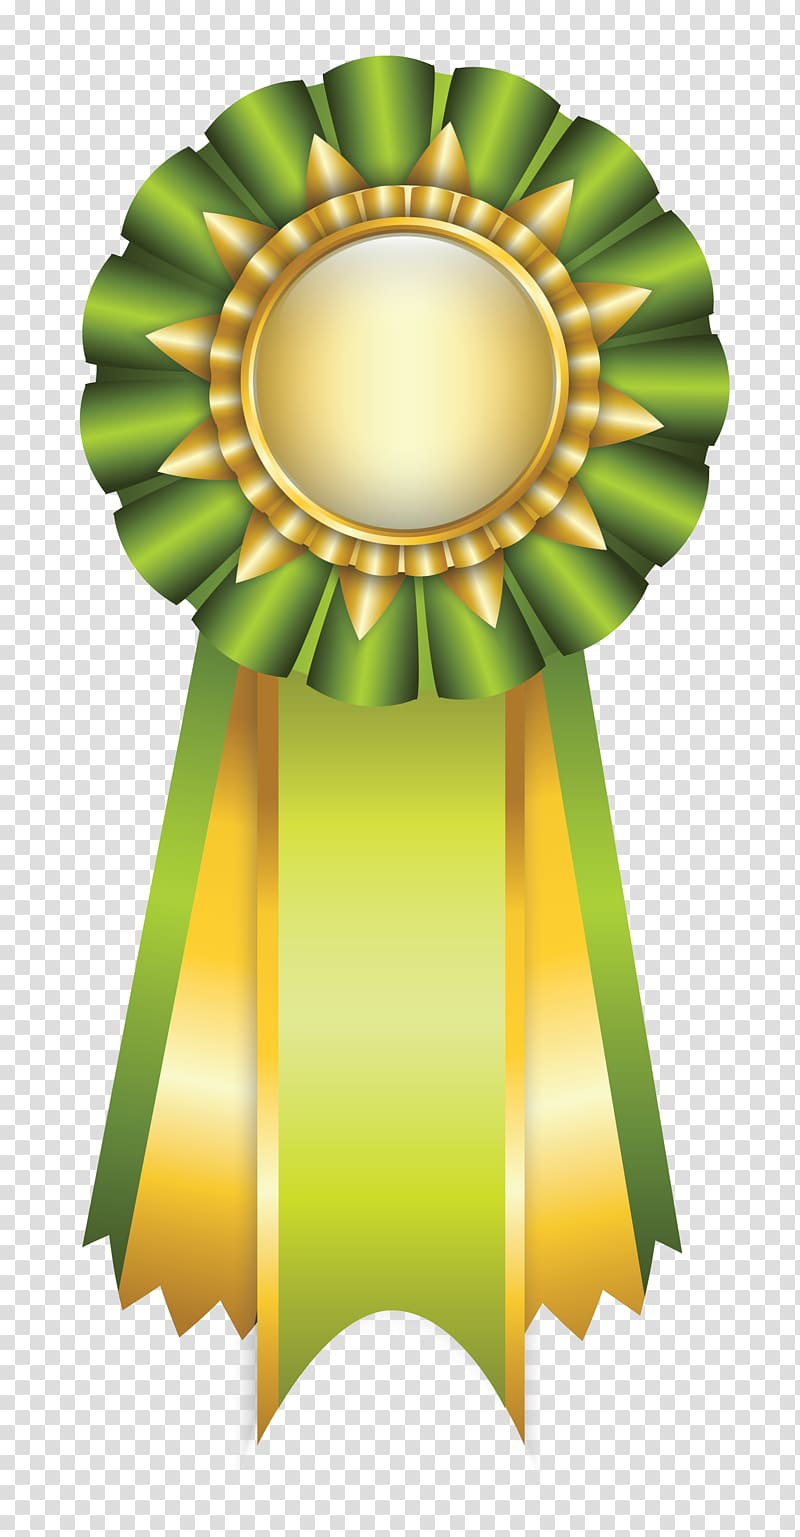 Green and yellow clipart clipart Green and yellow ribbon illustration, Rosette Ribbon , Green Rosette ... clipart